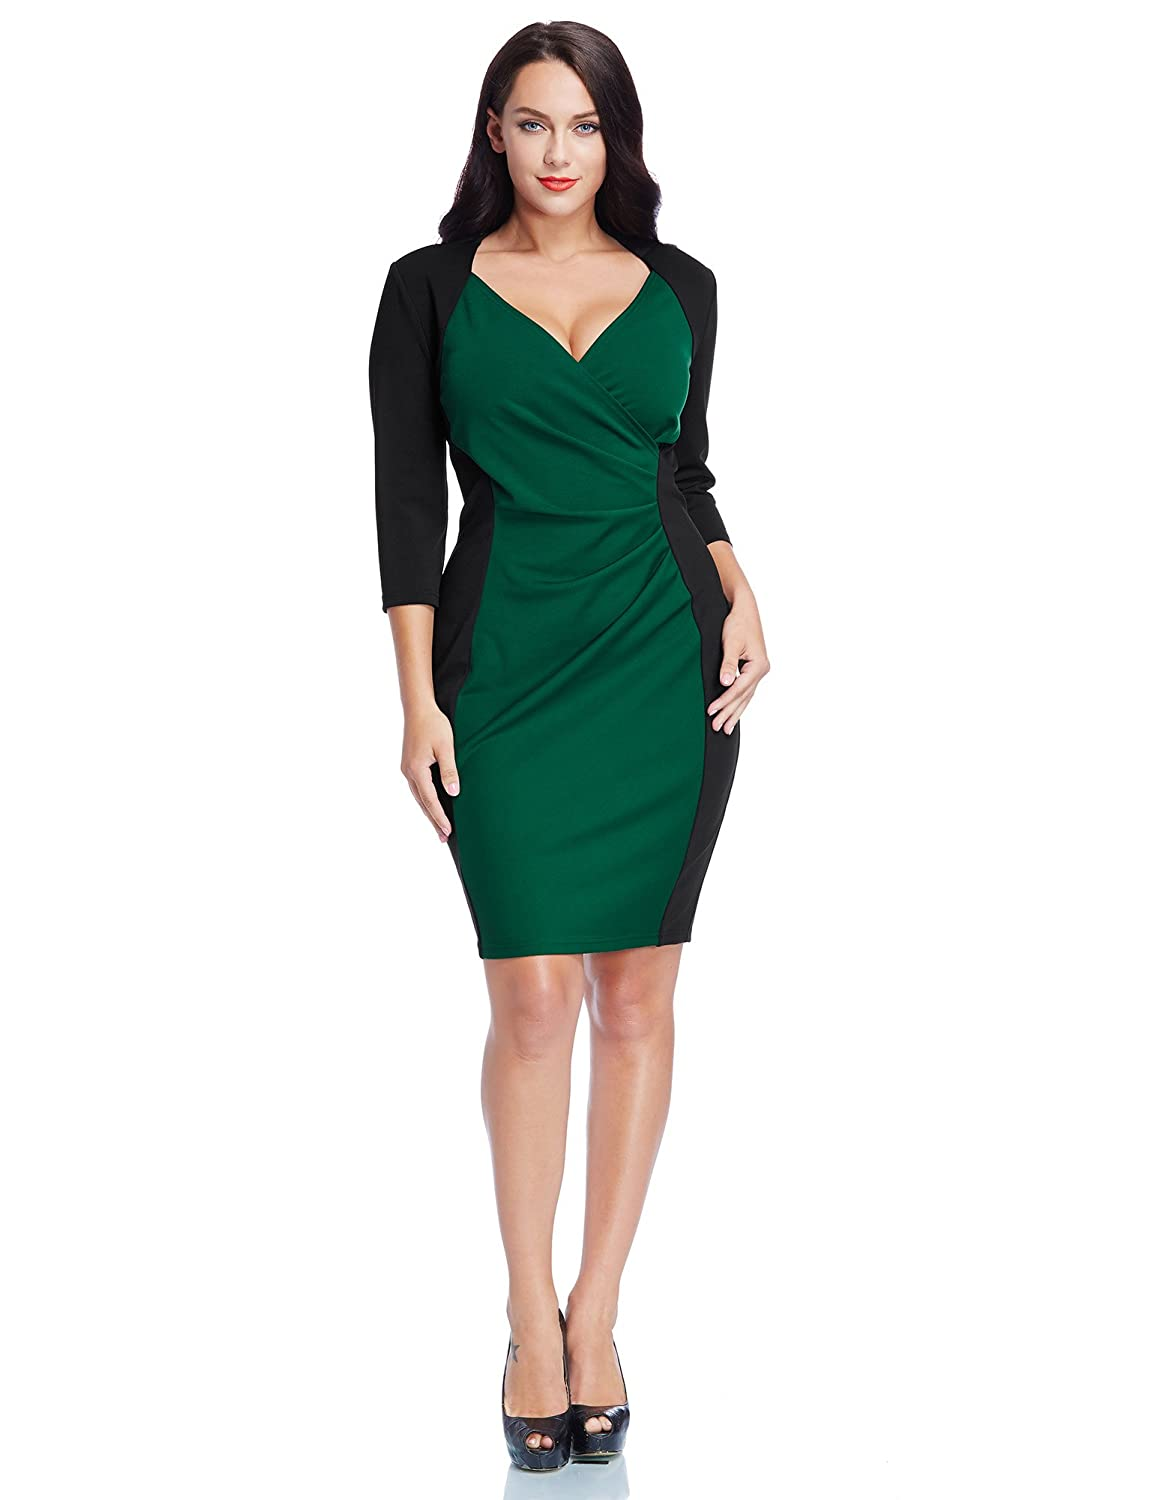 plus size zip dress and appearance